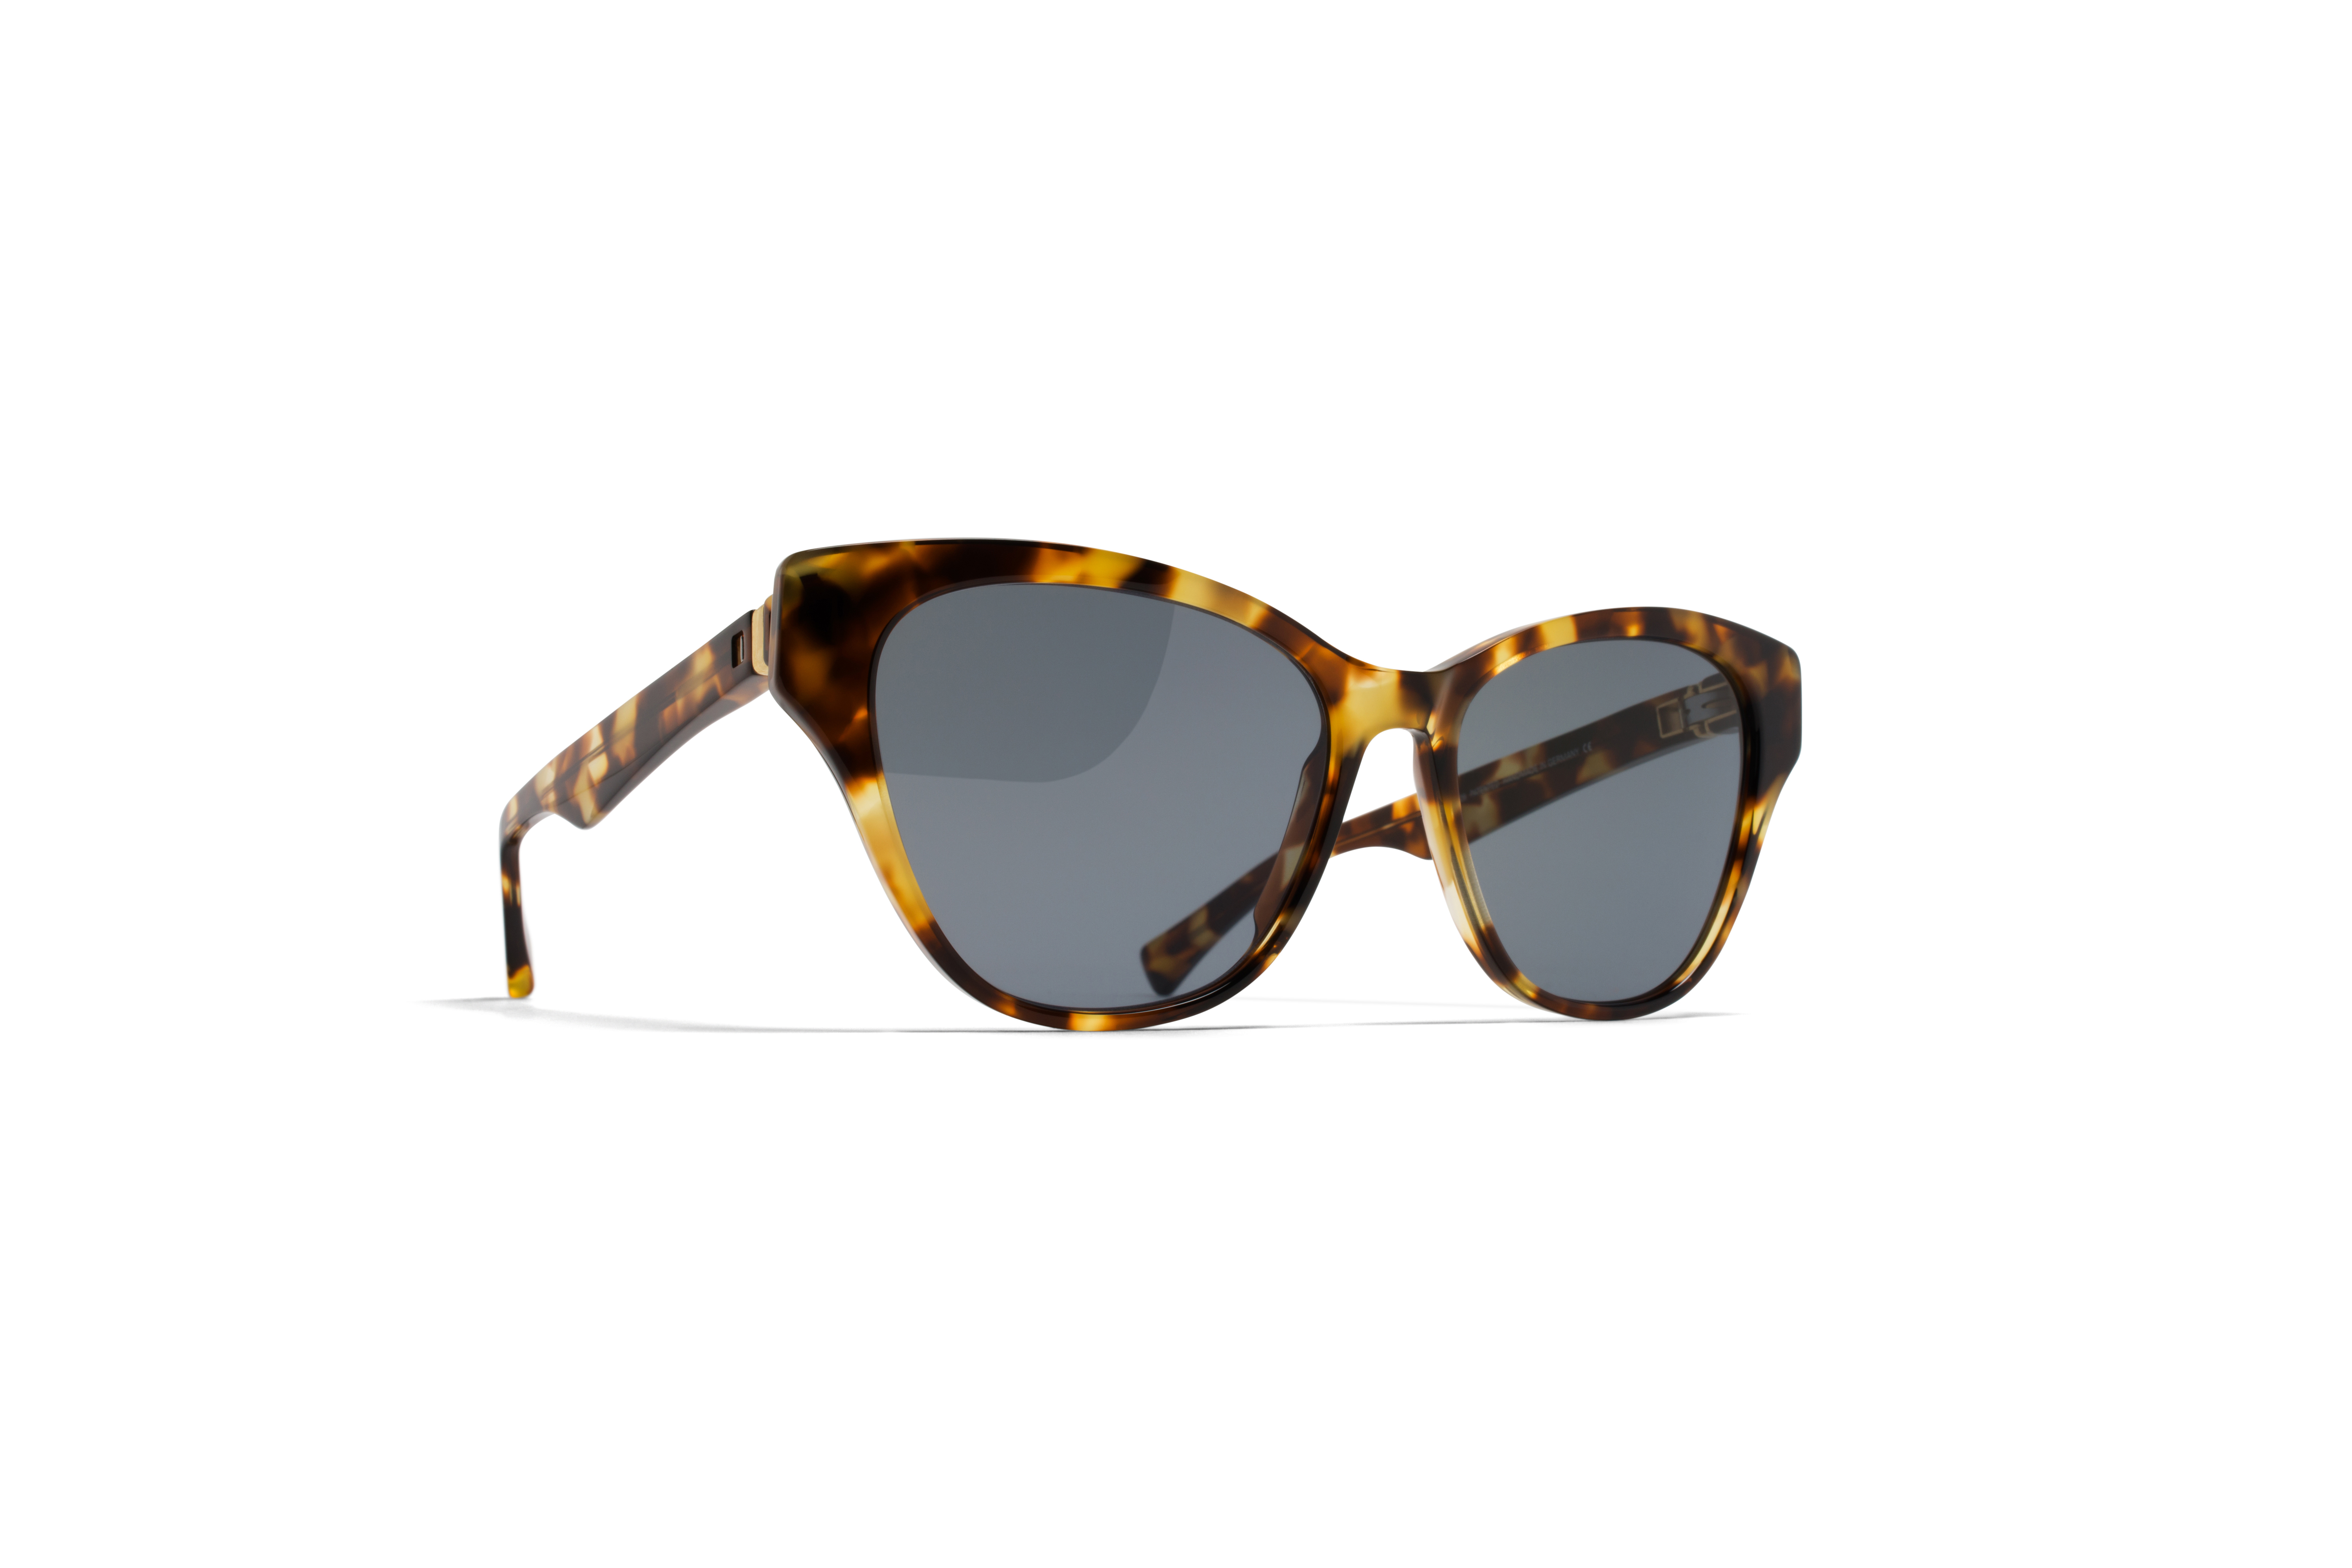 MYKITA Decades Ace Sun Madison Cocoa Sprinkles Dar57fe2dddd6eed